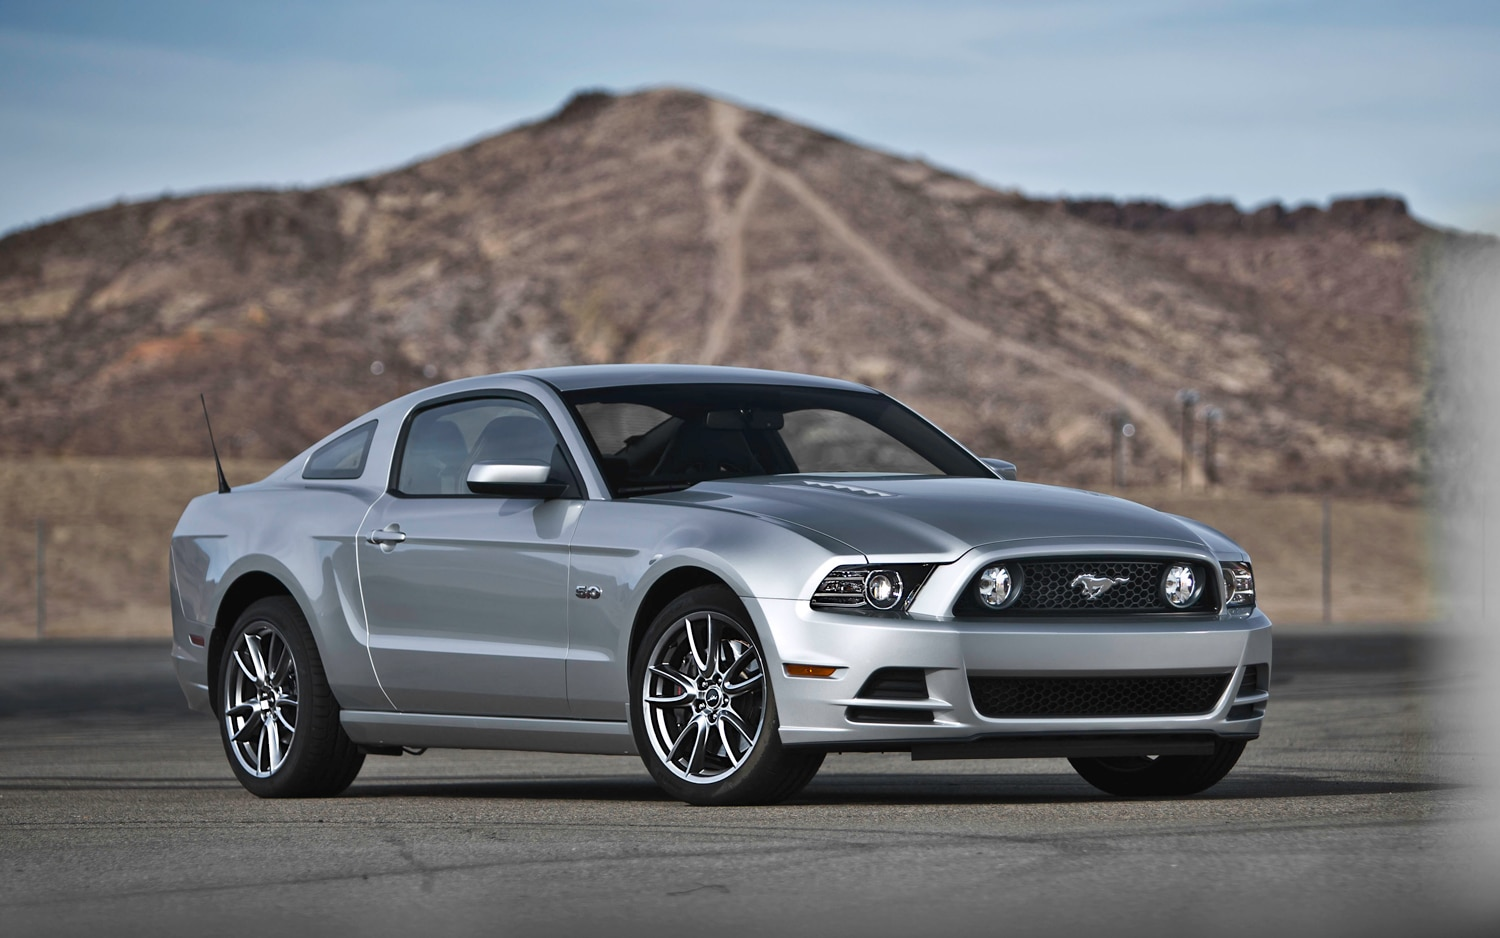 First Drive: 2013 Ford Mustang - Automobile Magazine